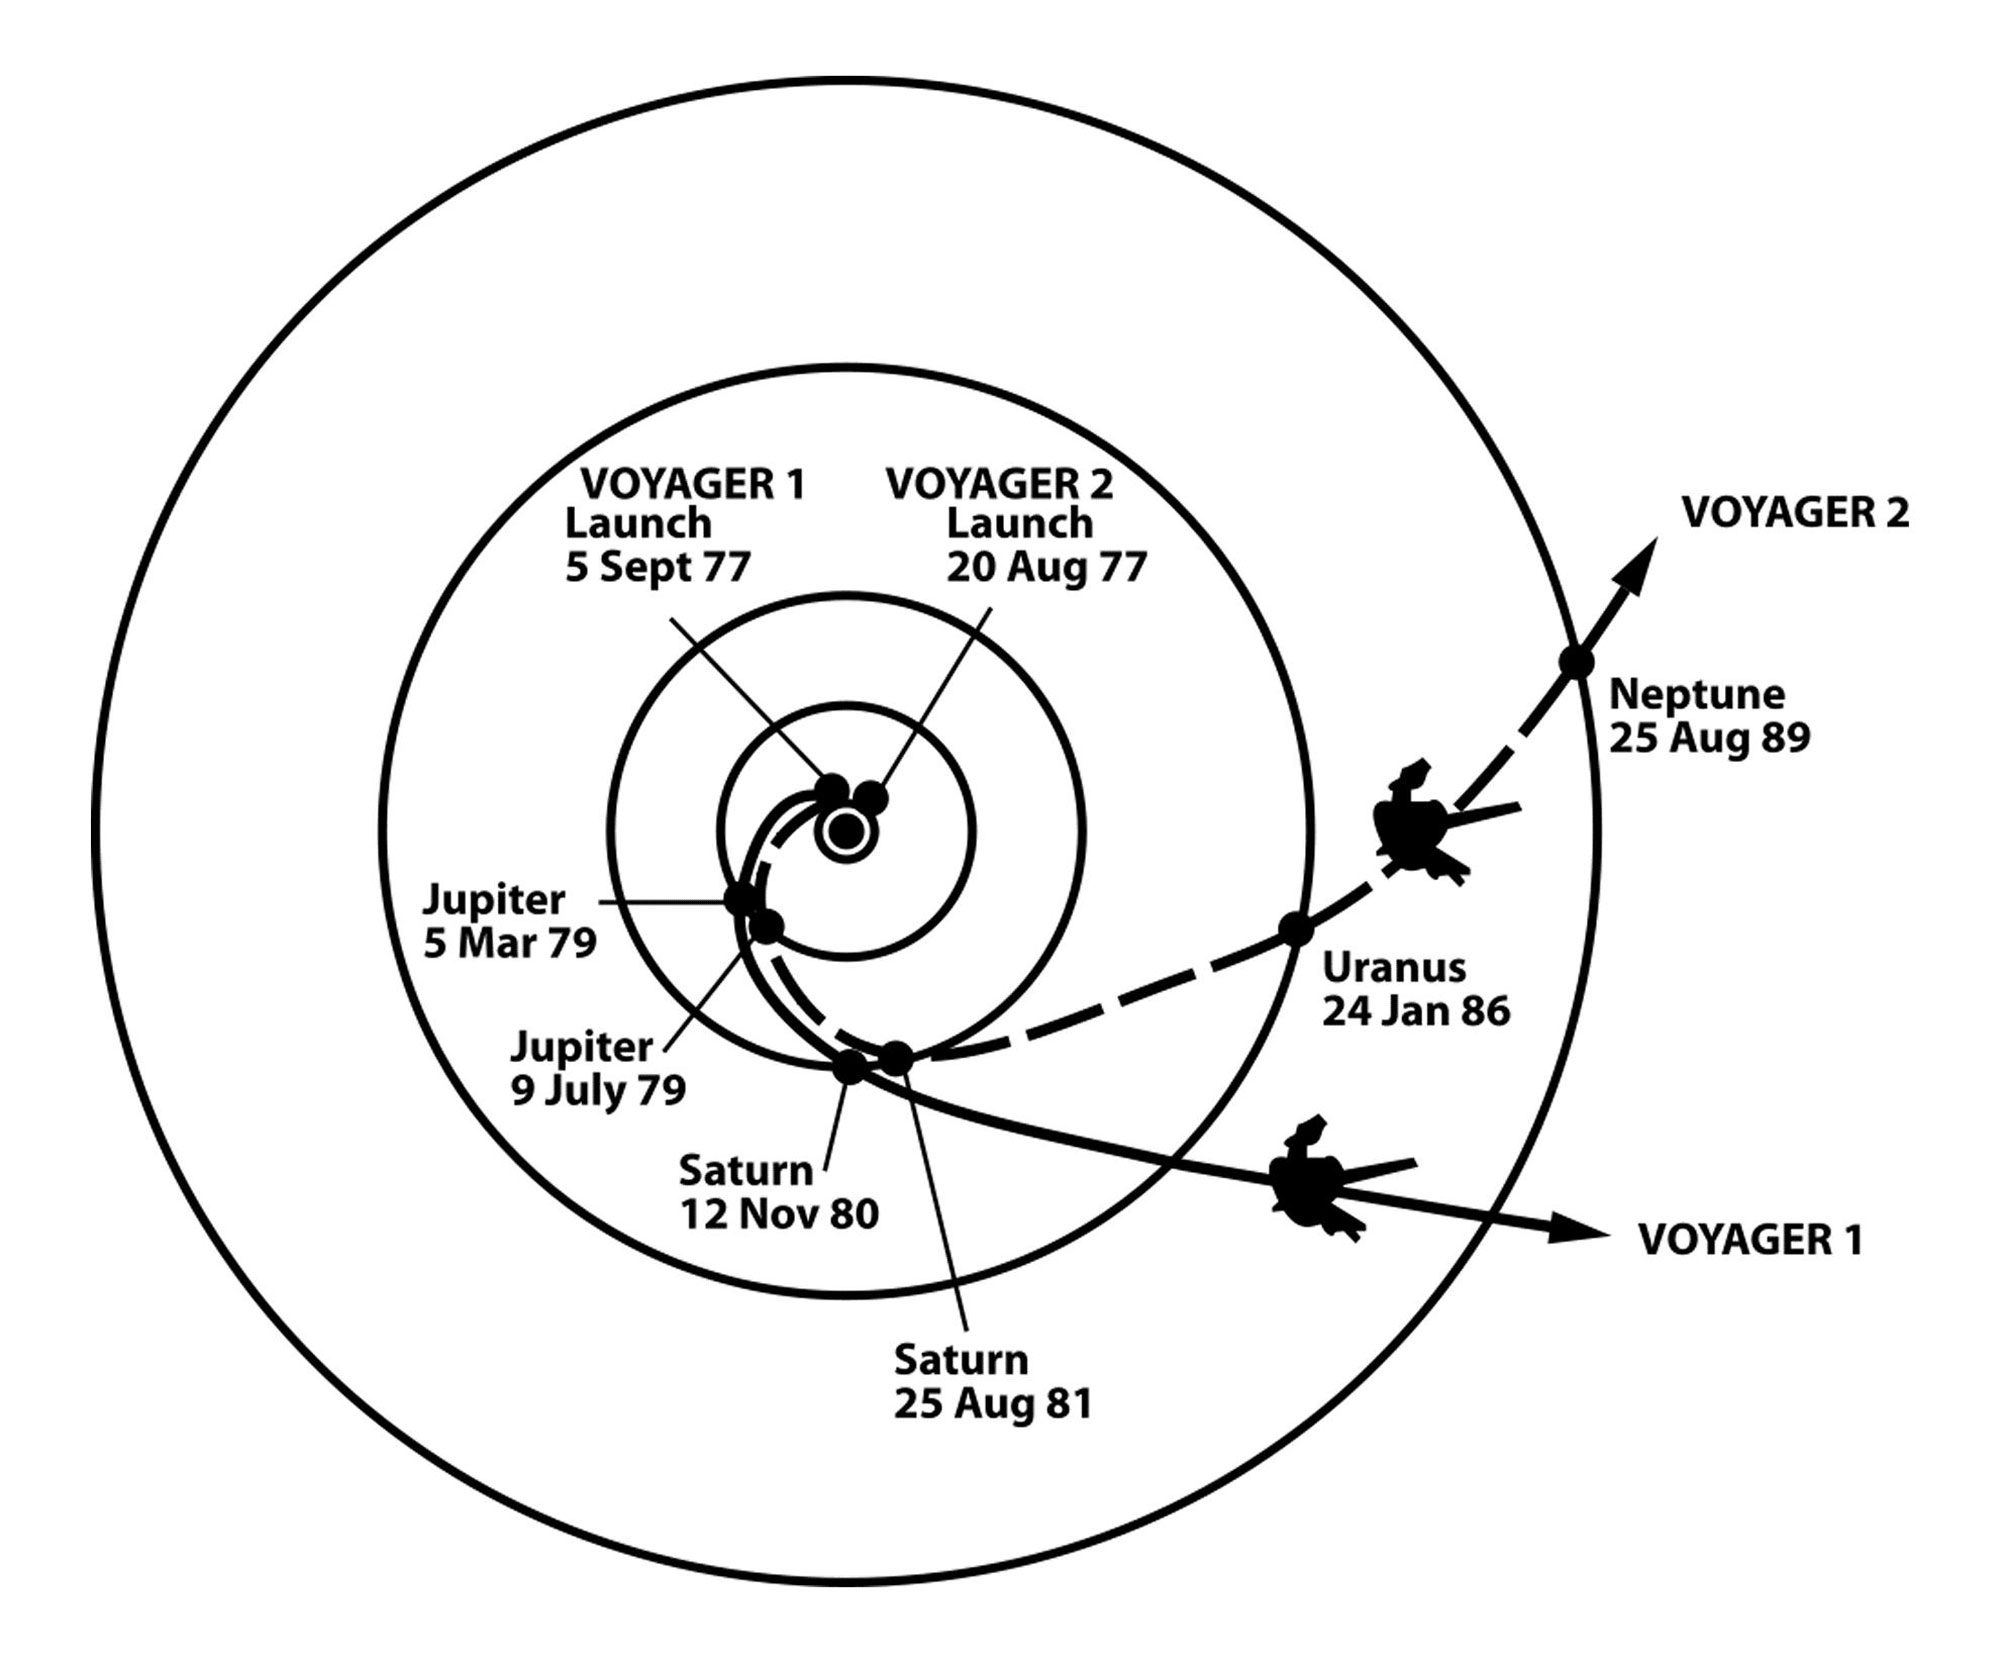 Voyager 1 and 2 Trajectories